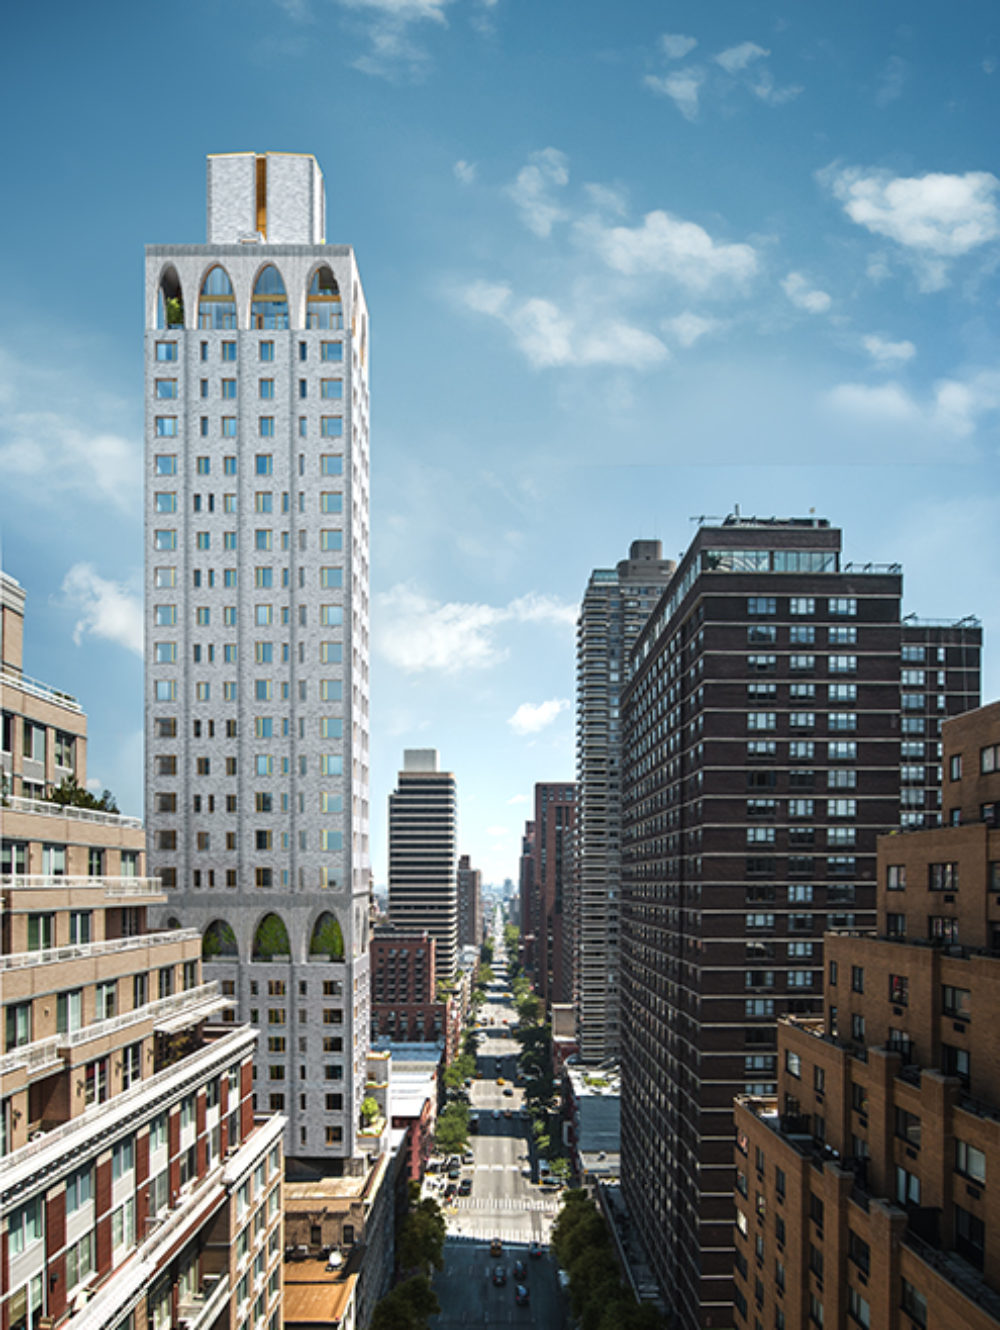 Exterior aerial view of 180 E 88th street condominiums surrounded by other buildings in New York City during the day.